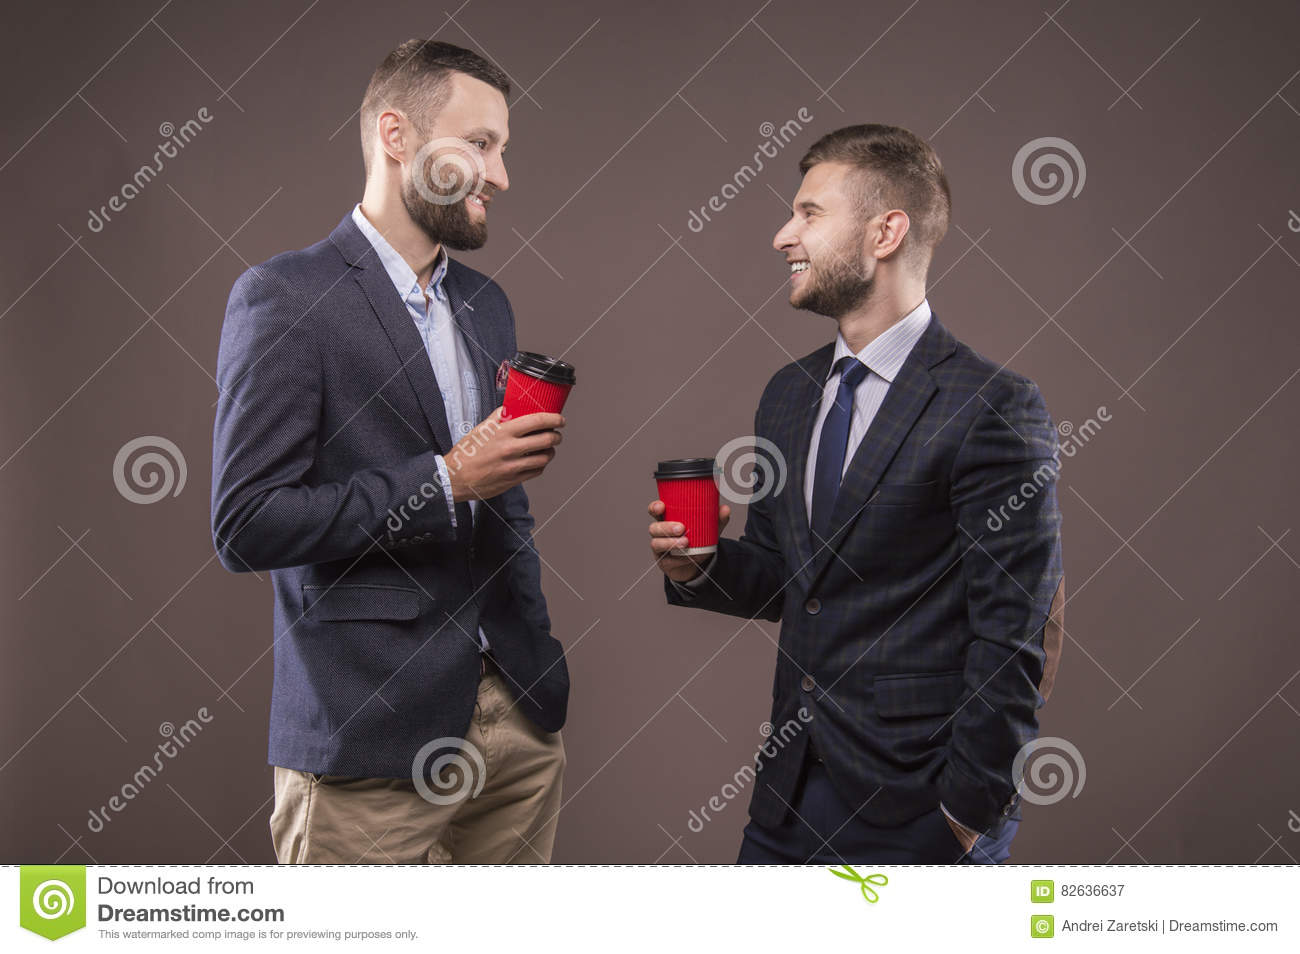 Two men standing with a cup of coffee